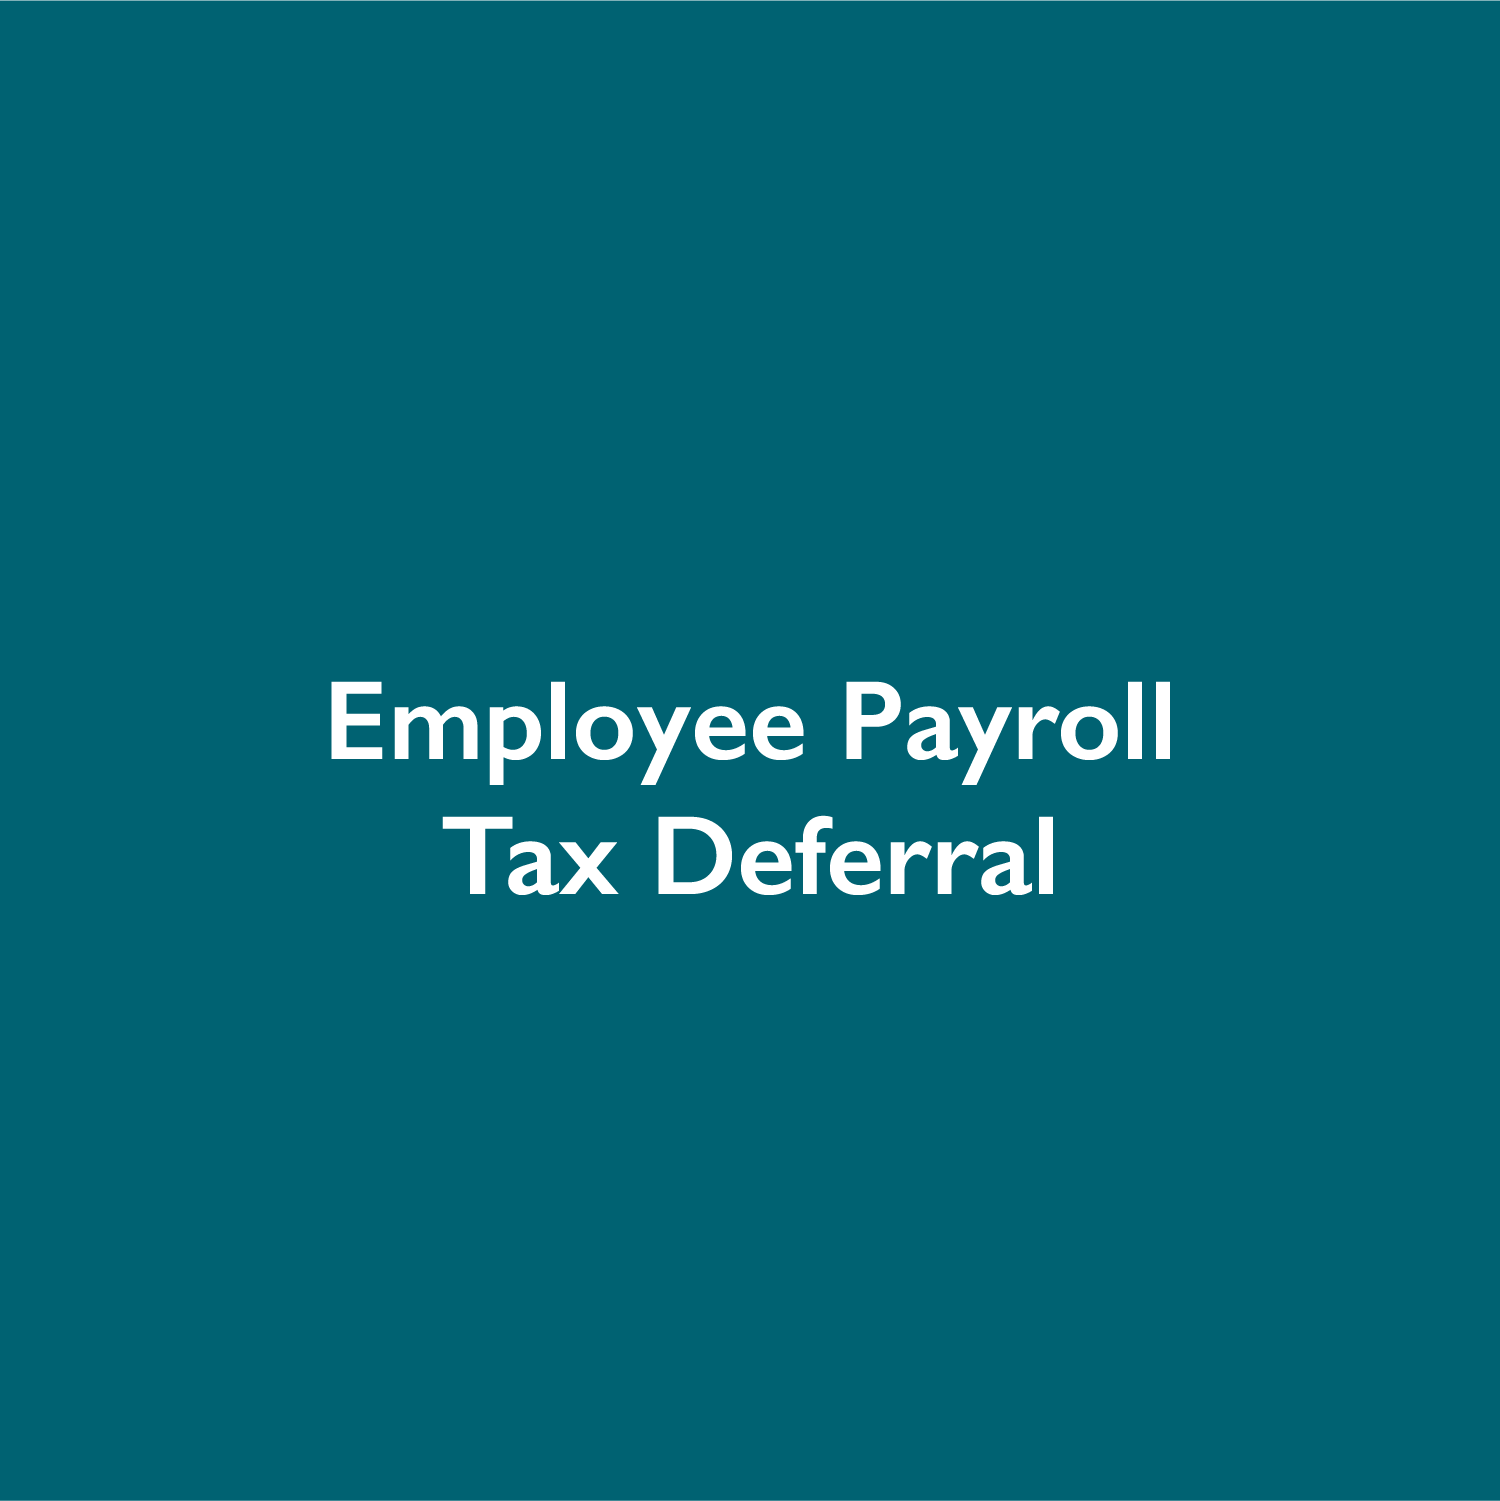 IRS Issues Guidance on Employee Payroll Tax Deferral